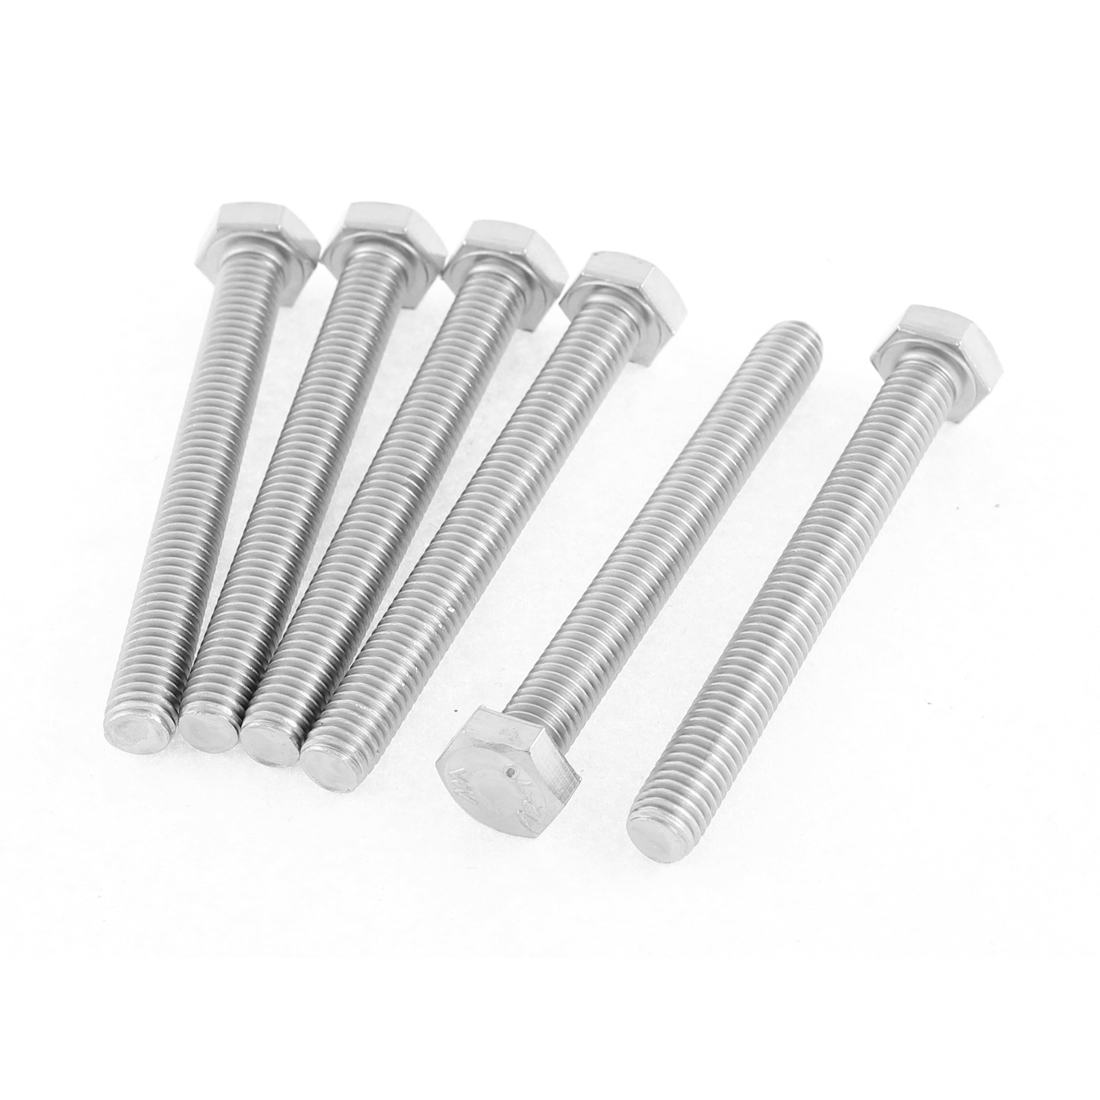 Uxcell M8 x 70mm Metric 304 Stainless Steel Fully Threaded Hex Head Screw Bolt (6-pack)